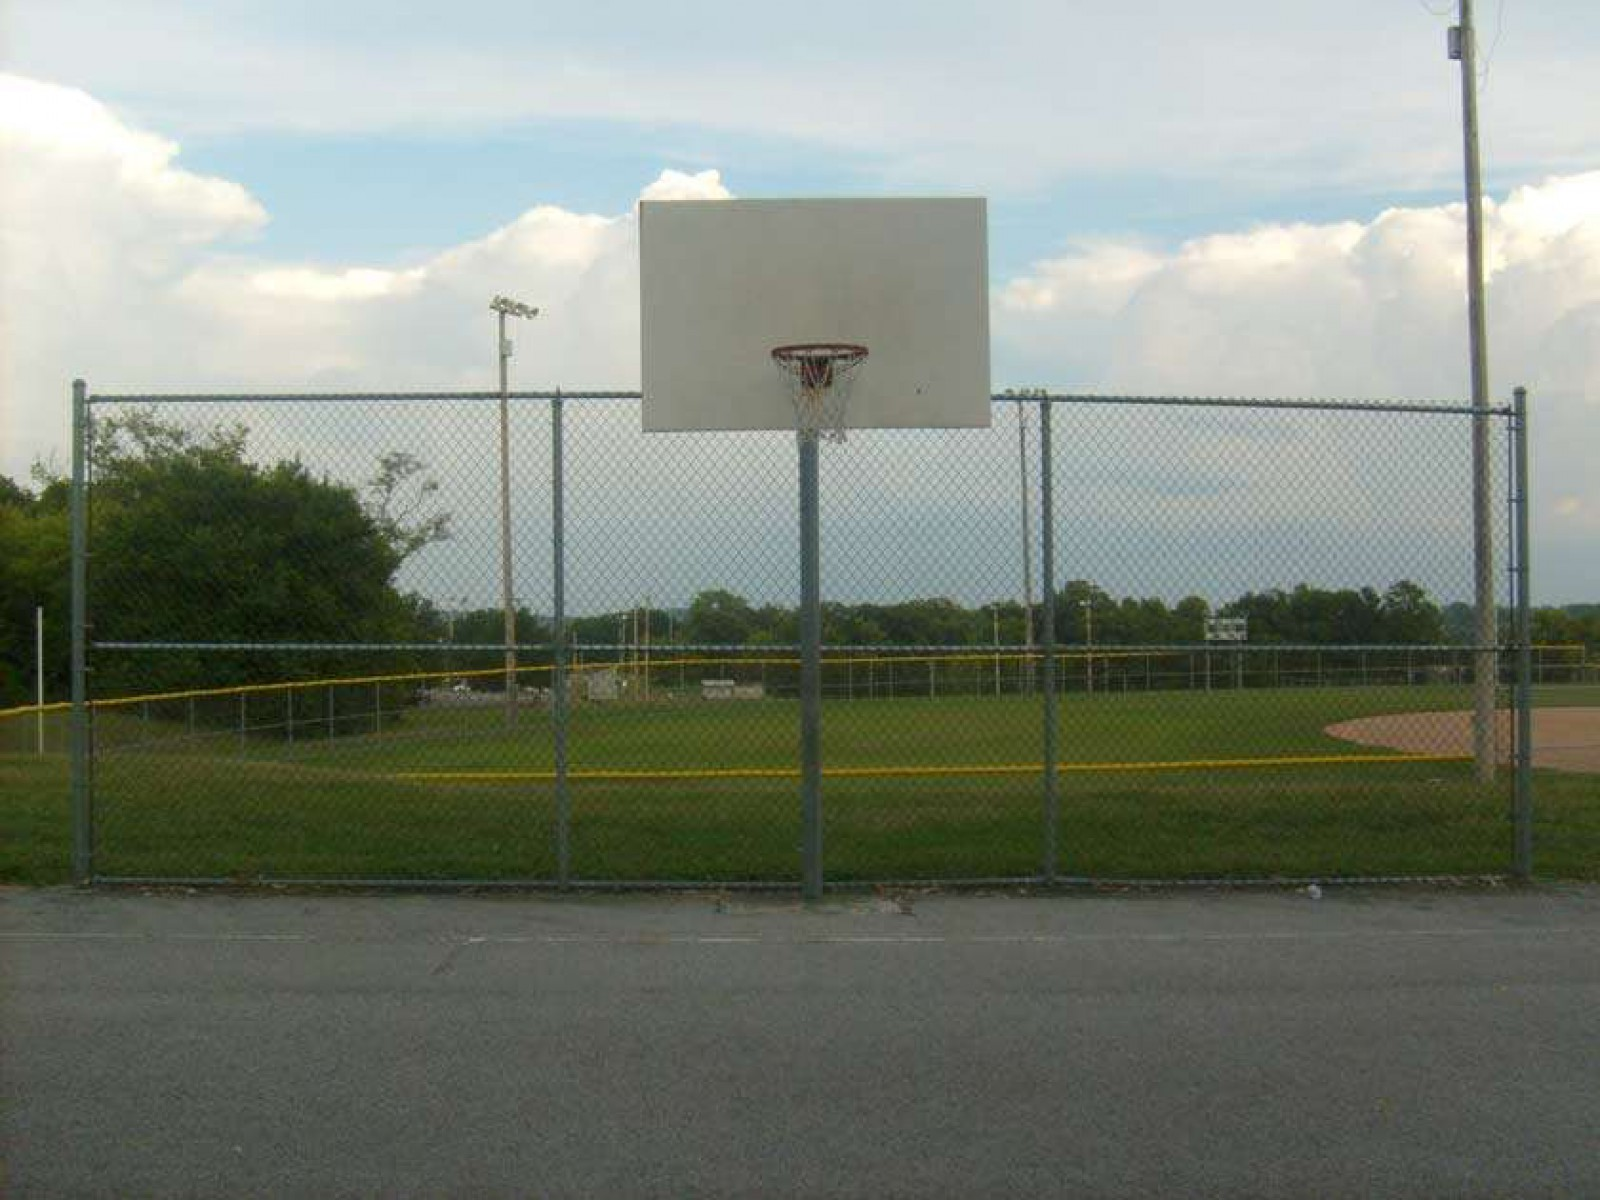 Cane Ridge Basketball Court, Antioch, TN, United States